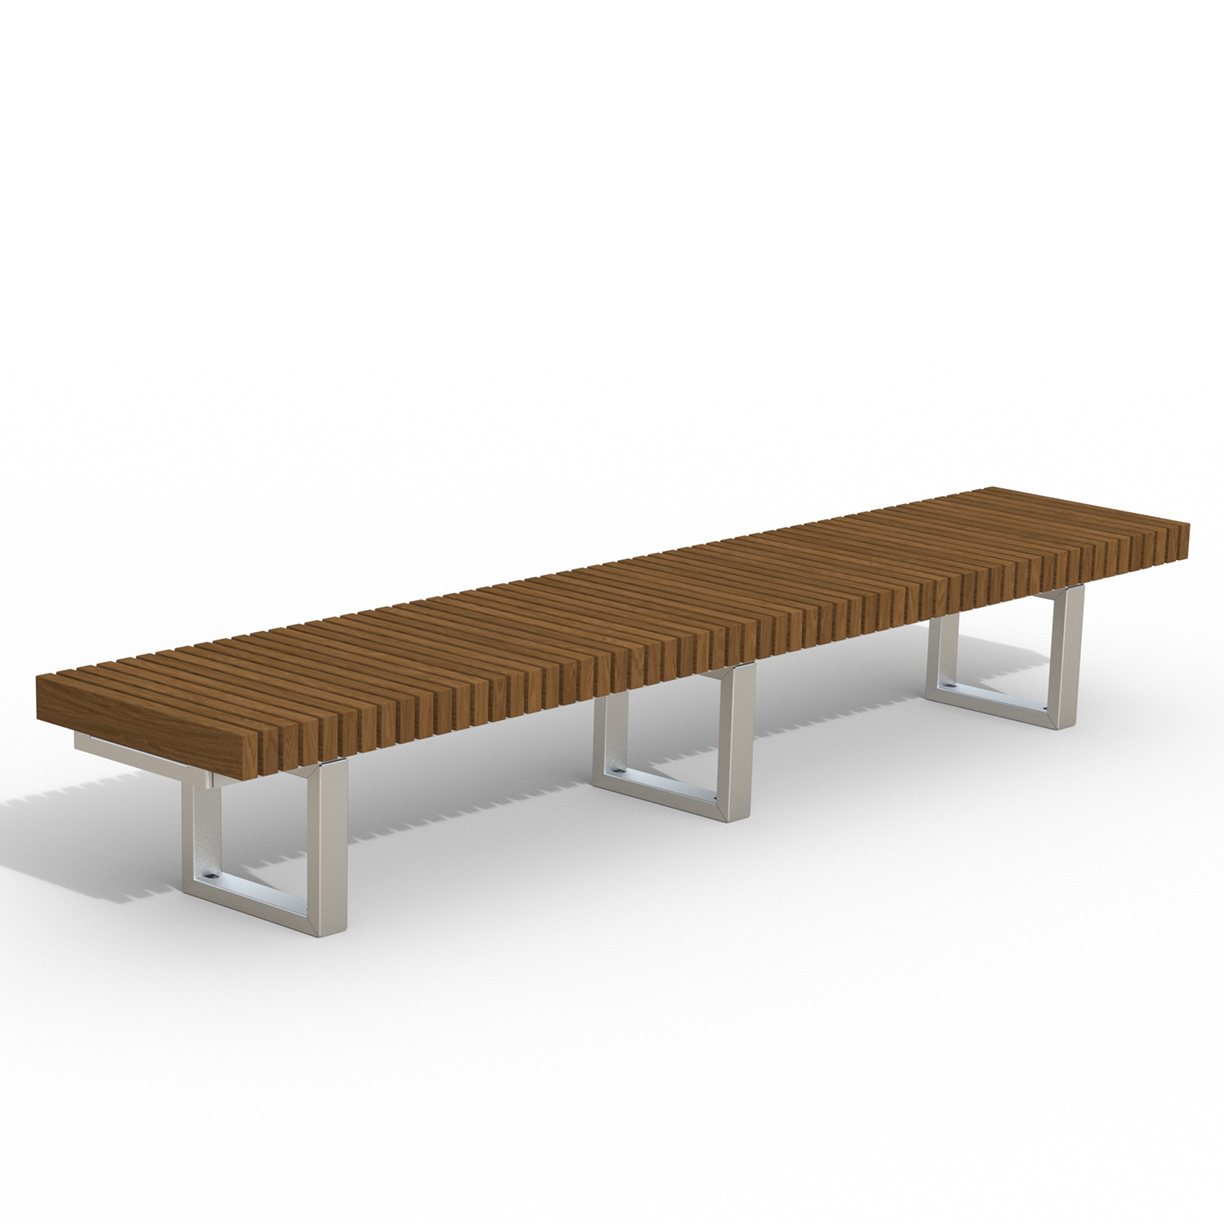 INF24L10T  Infinity Collection 2' x 10' Linear Thermory Slat Bench